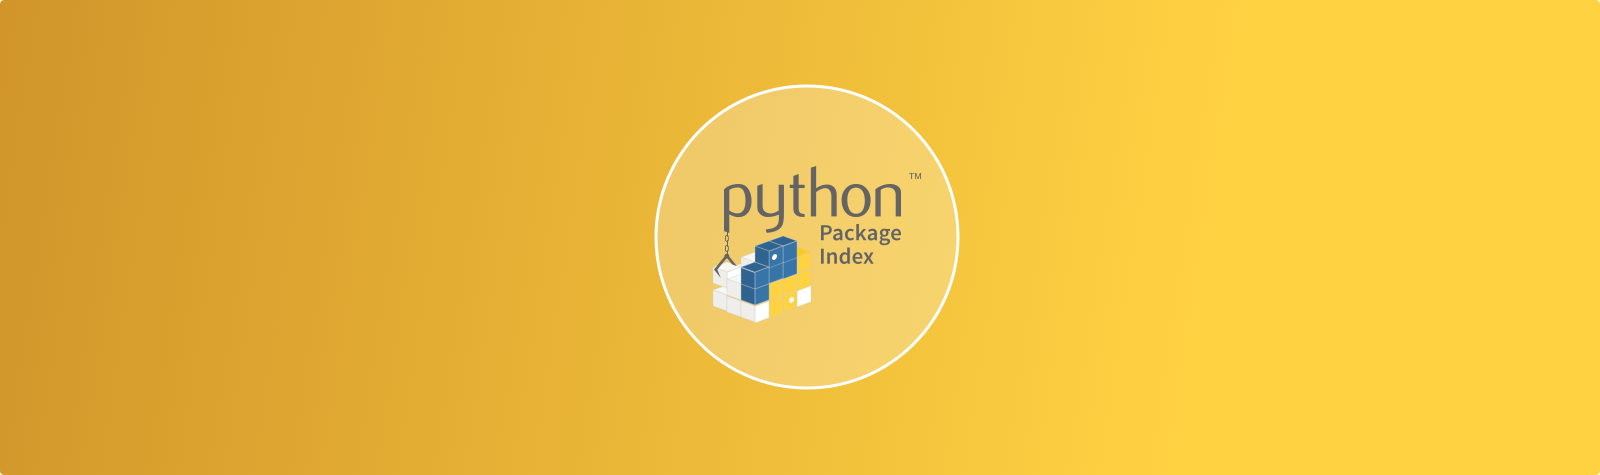 Over 10% of Python Packages on PyPI are Distributed Without Any